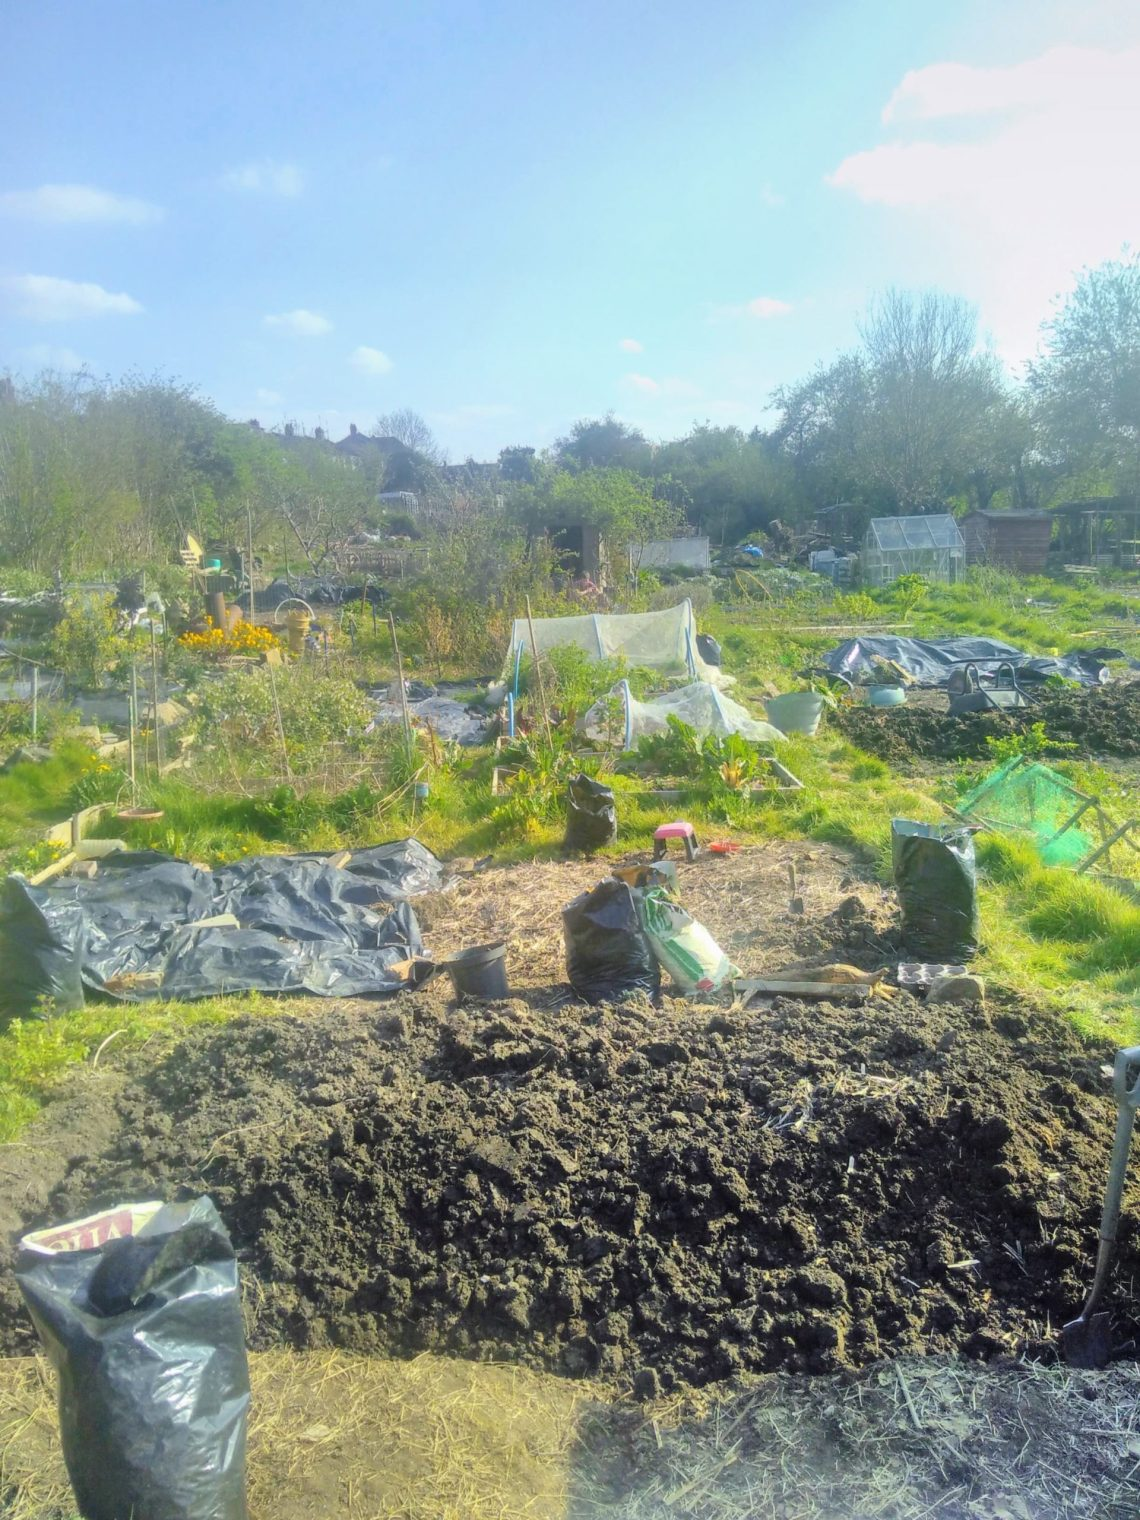 View of the allotment